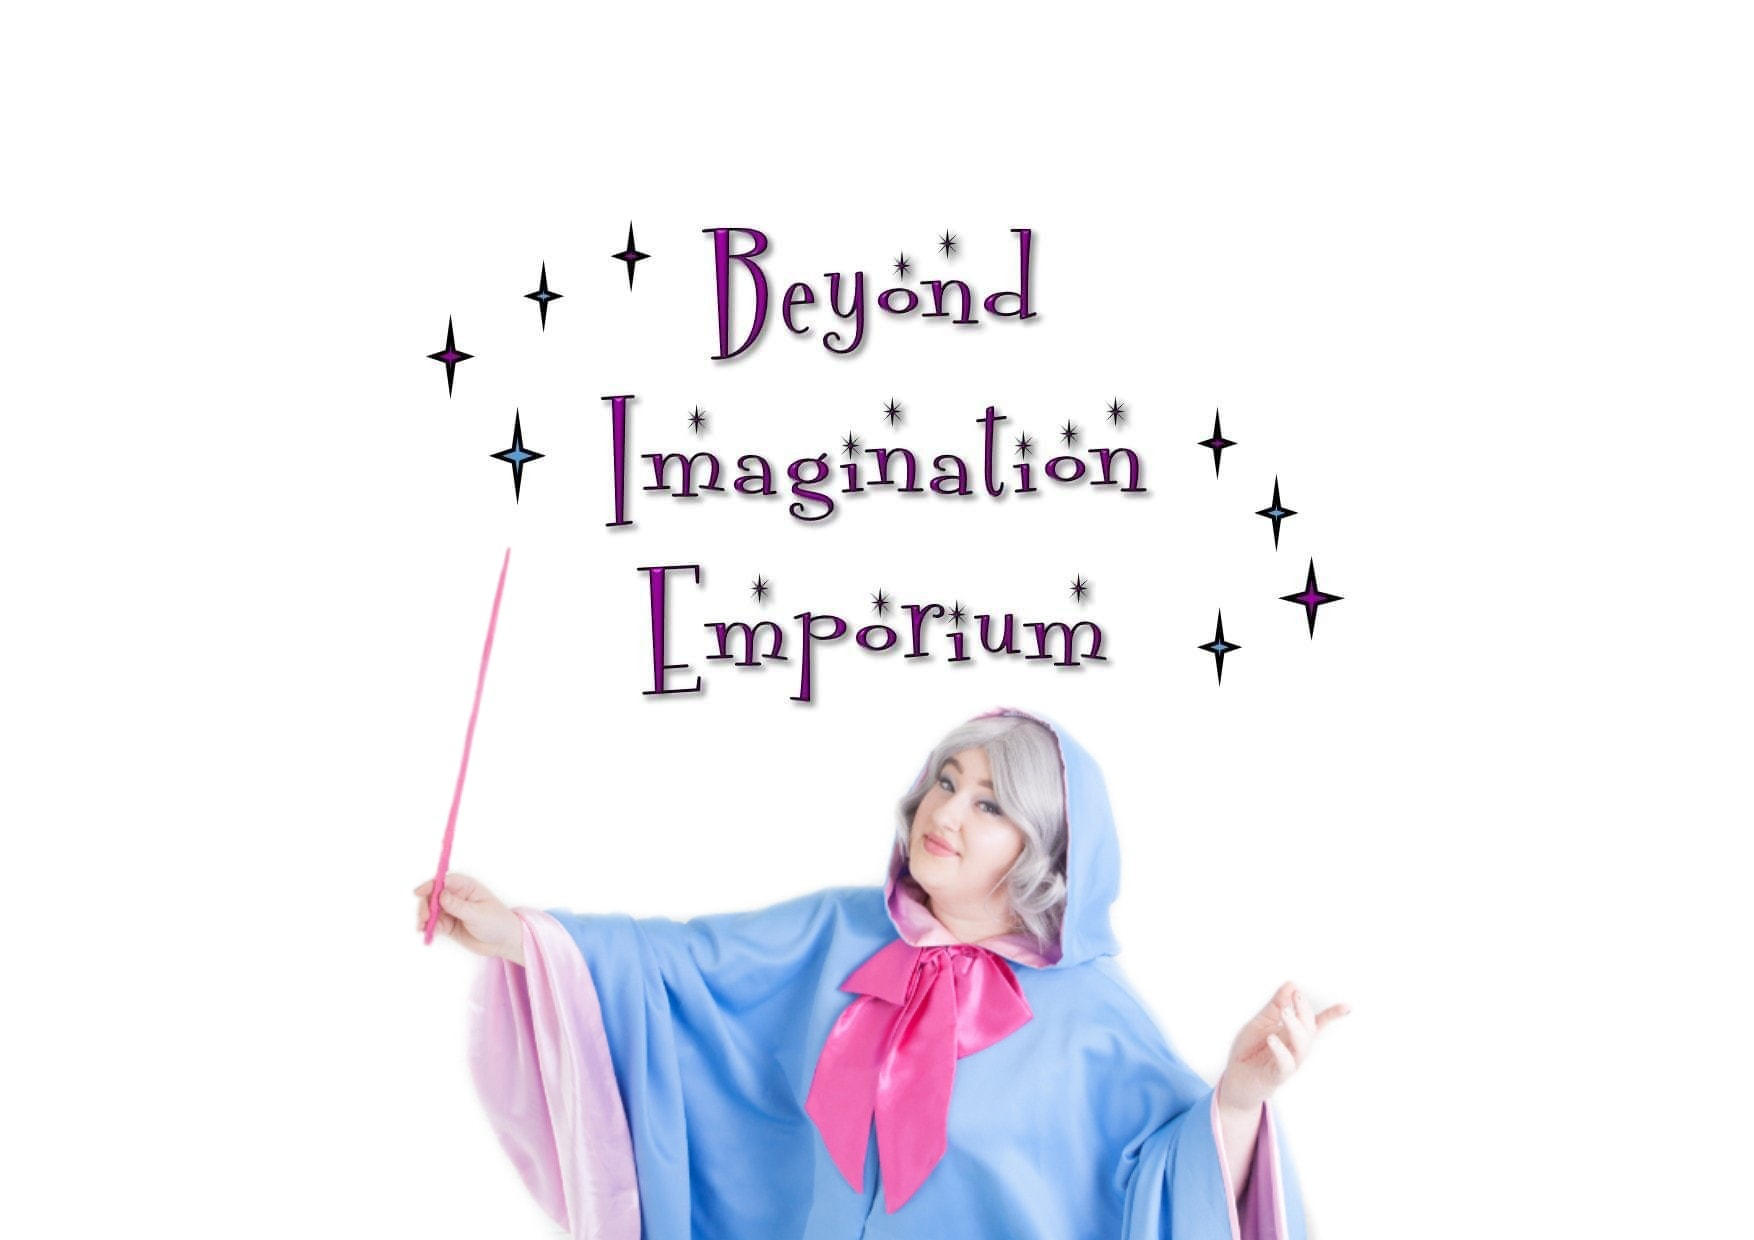 Beyond Imagination Emporium